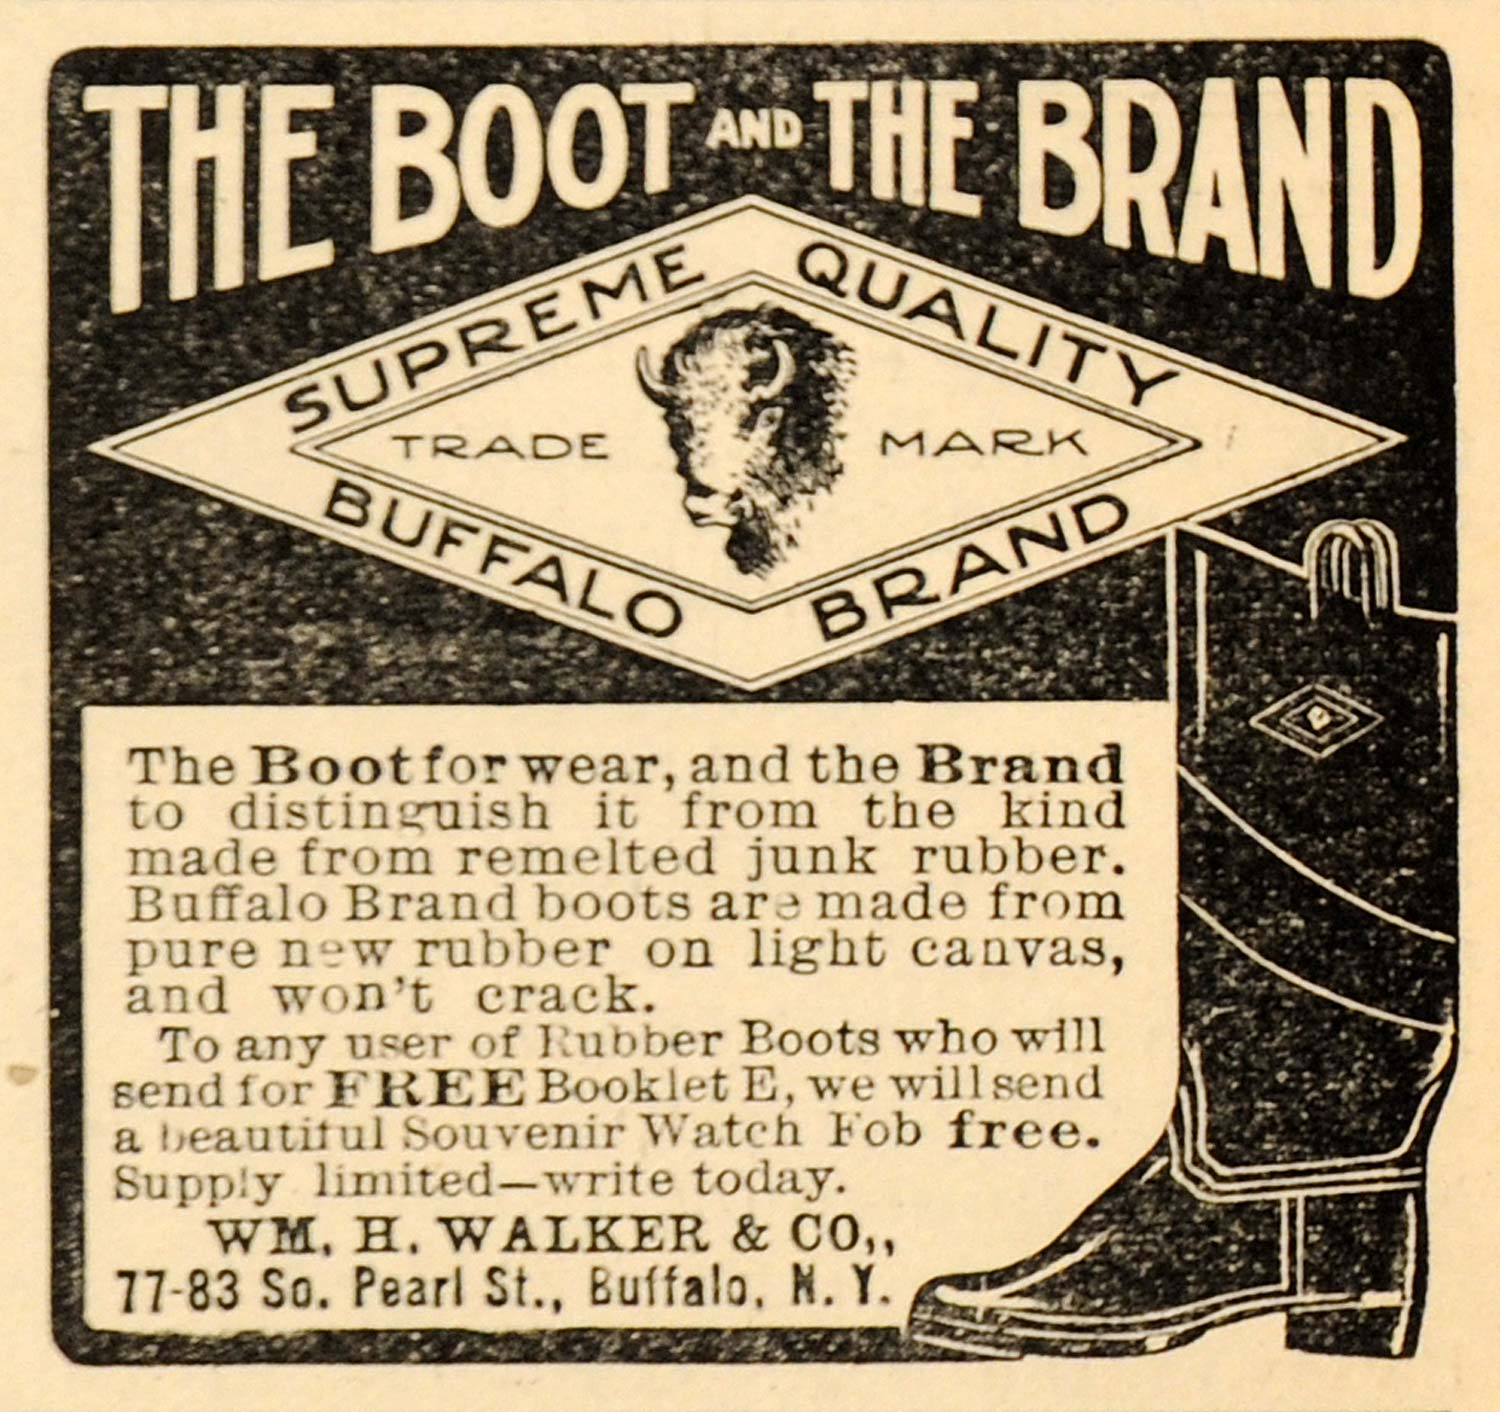 1907 Ad William H Walker & Company Buffalo Brand Boot - ORIGINAL ADVERTISING CG1